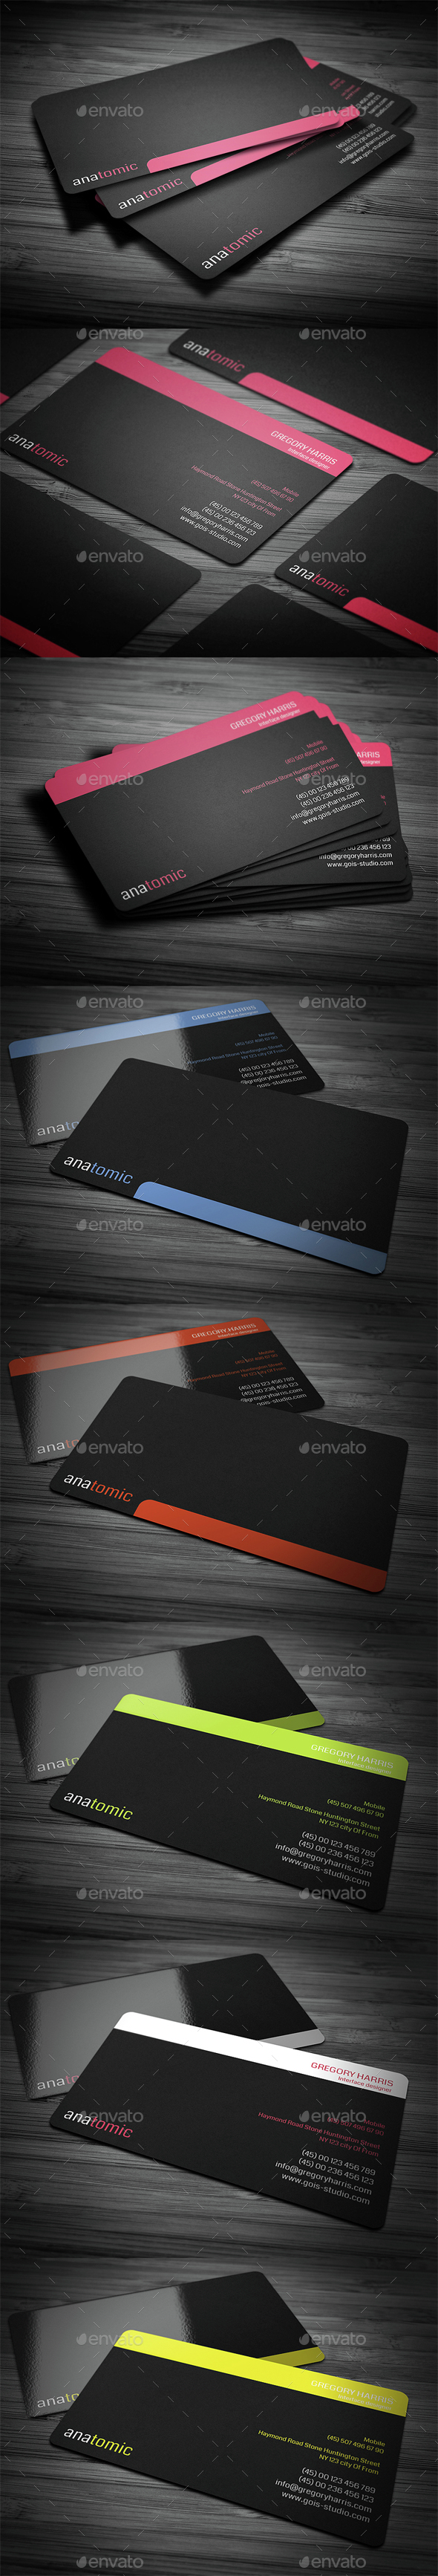 Innova Business Card - Corporate Business Cards